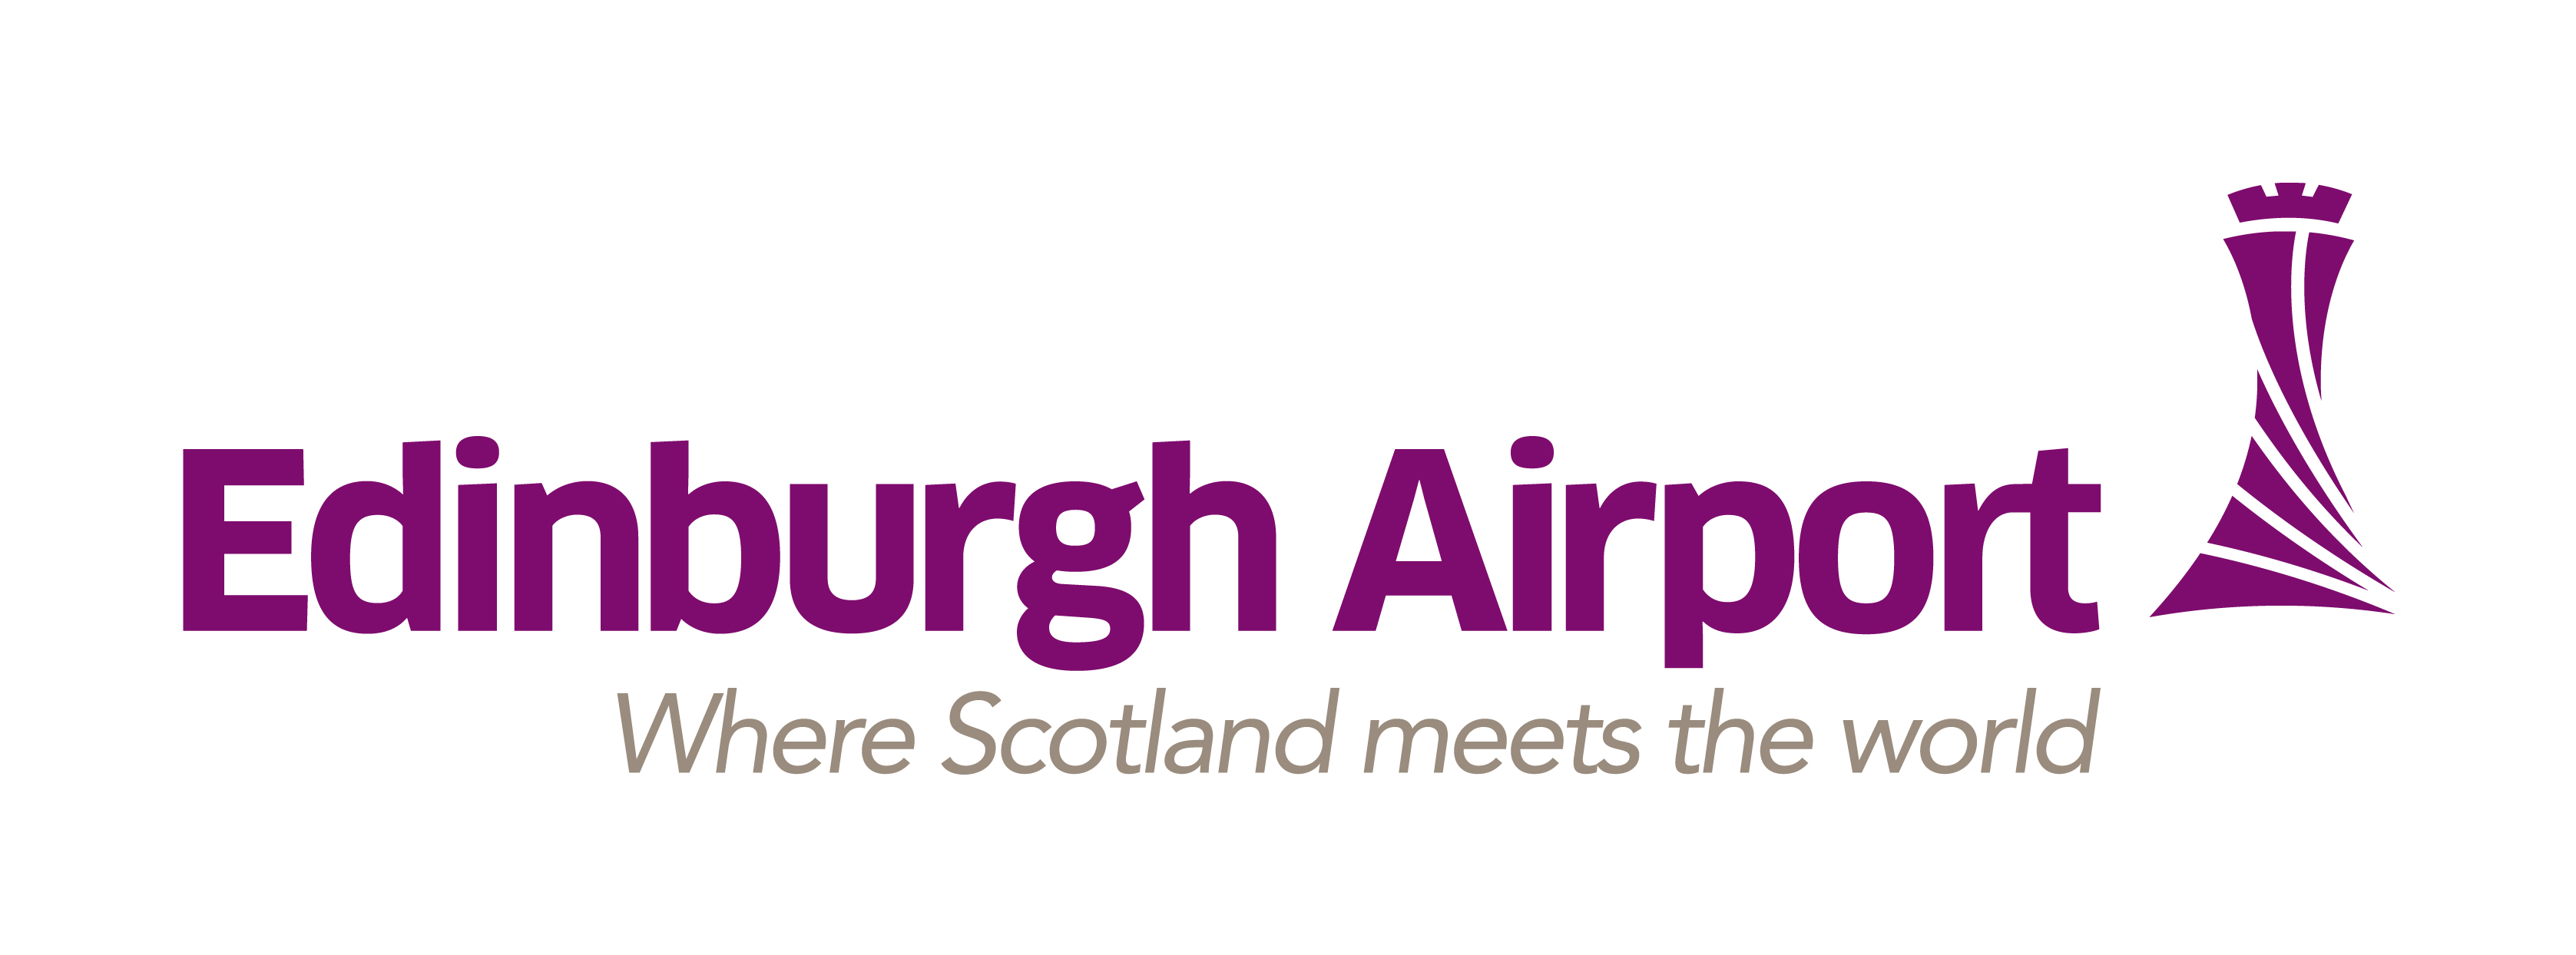 Corporate Golf Edinburgh - Edinburgh Airport